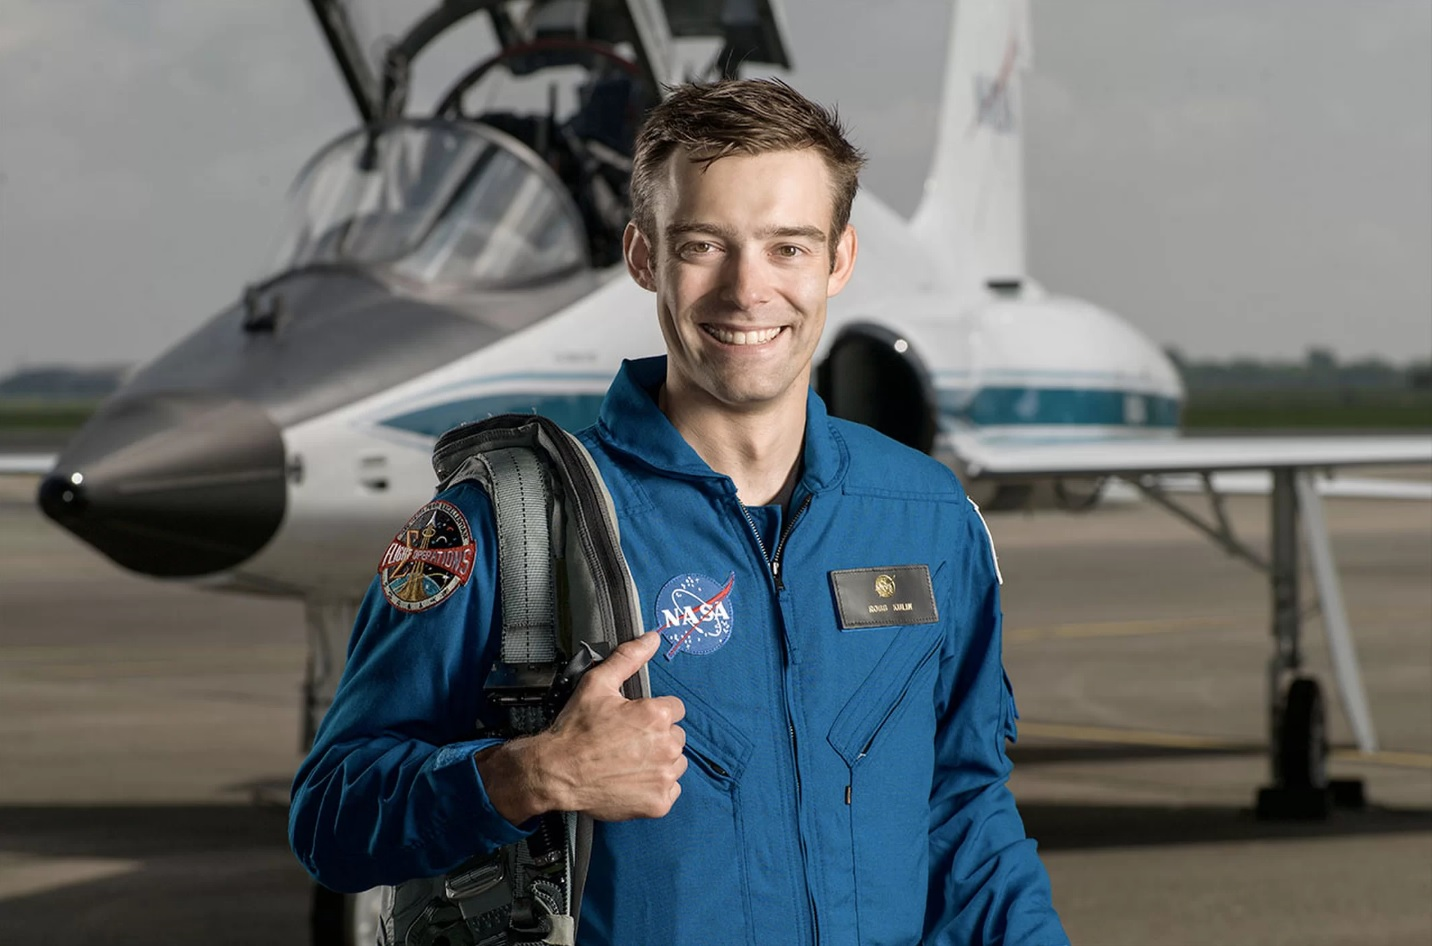 For the first time in 50 years potential NASA astronaut refused training